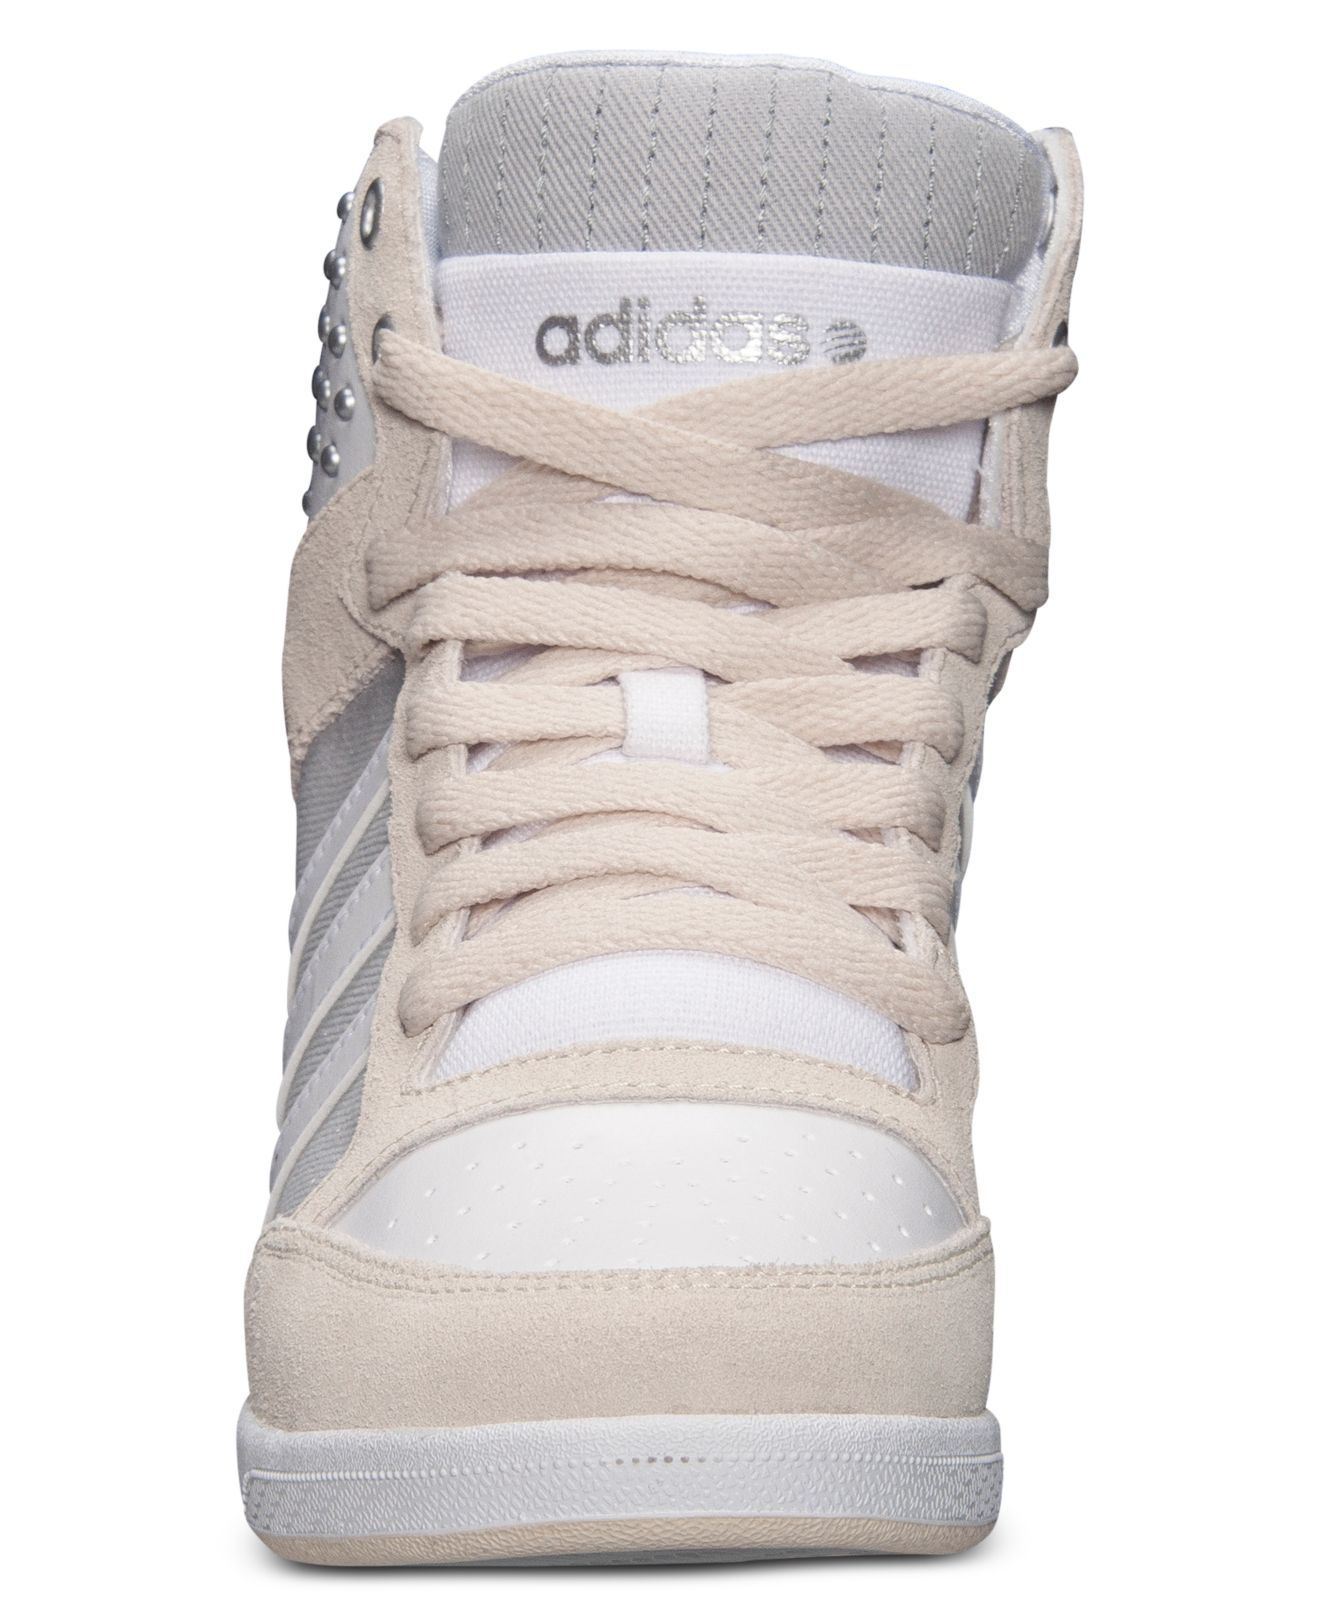 f923886c9 ... france lyst adidas women s weneo super wedge casual sneakers from  finish. adidas neo label